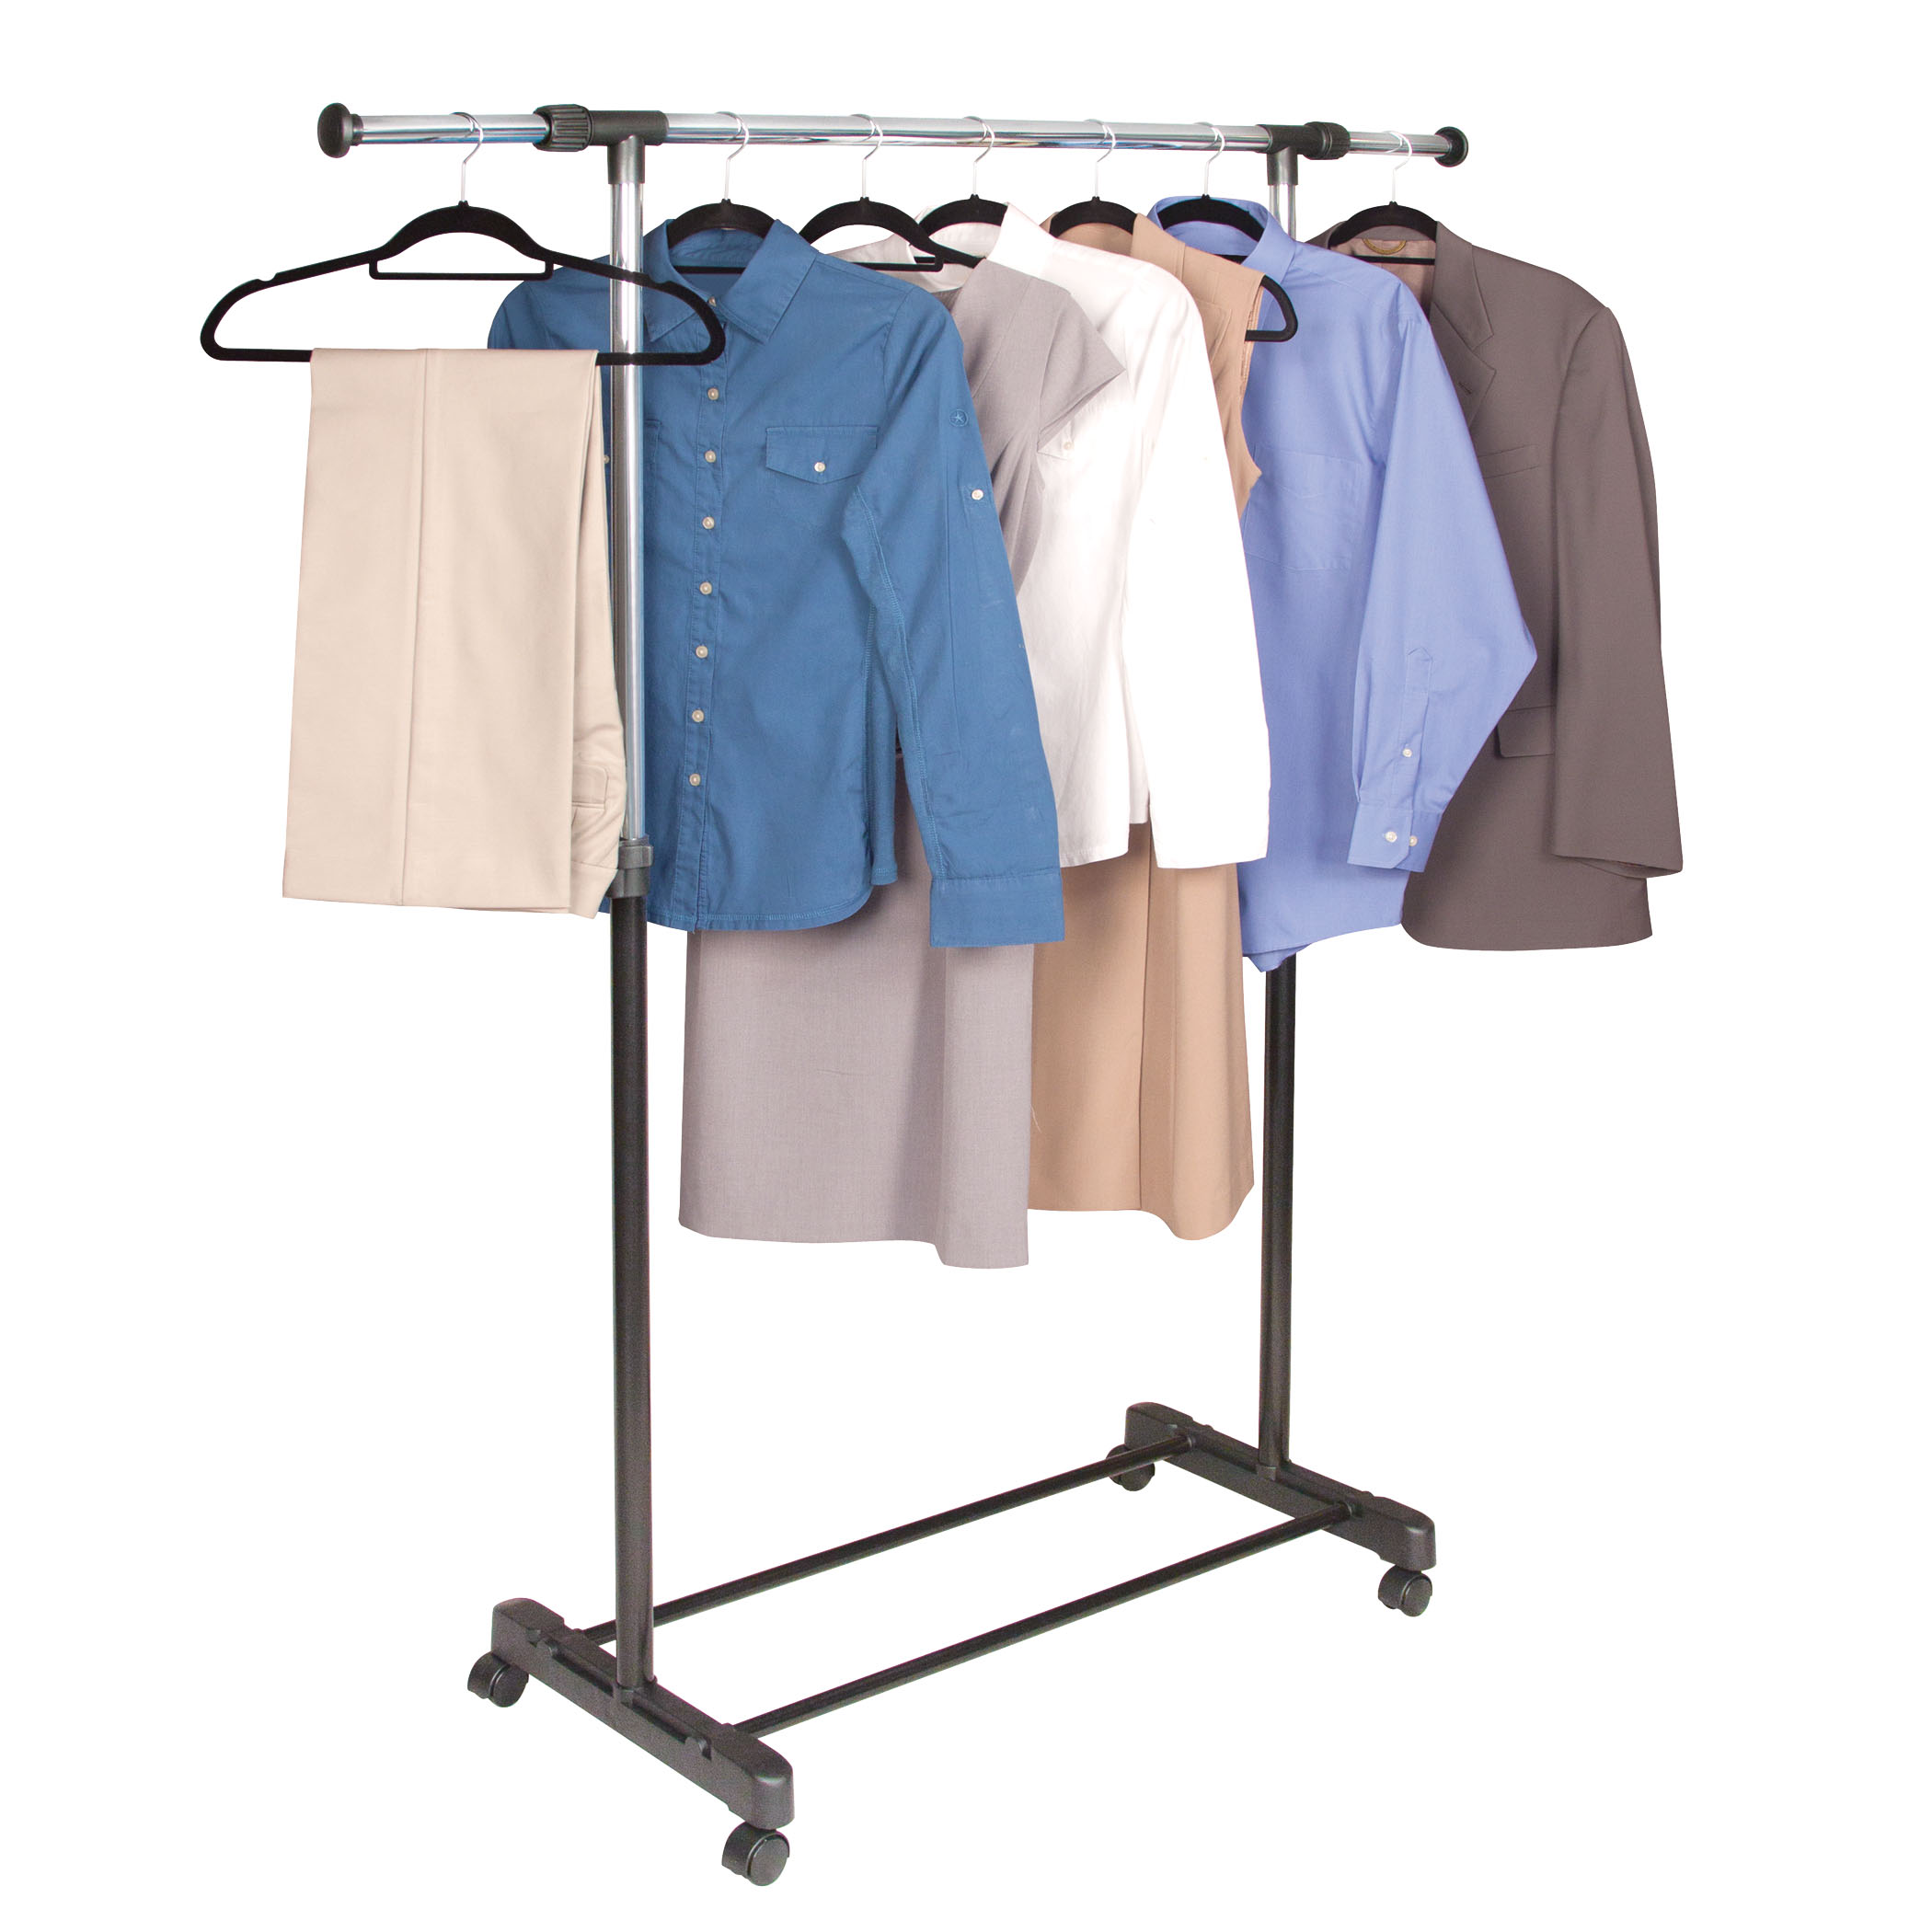 Garment Rack Chrome & Black Extendable by Richards Homewares